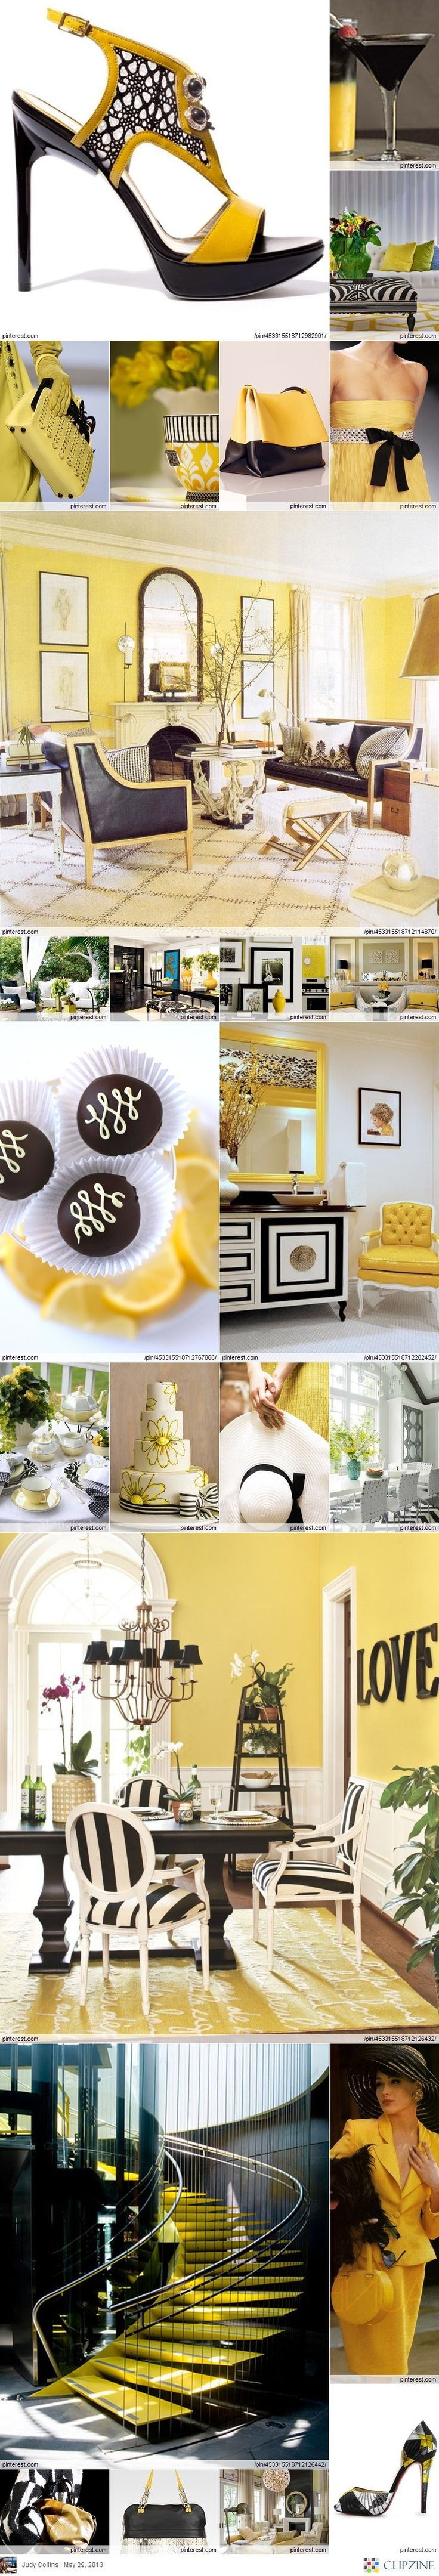 105 best black, yellow and white images on Pinterest | Bedrooms ...